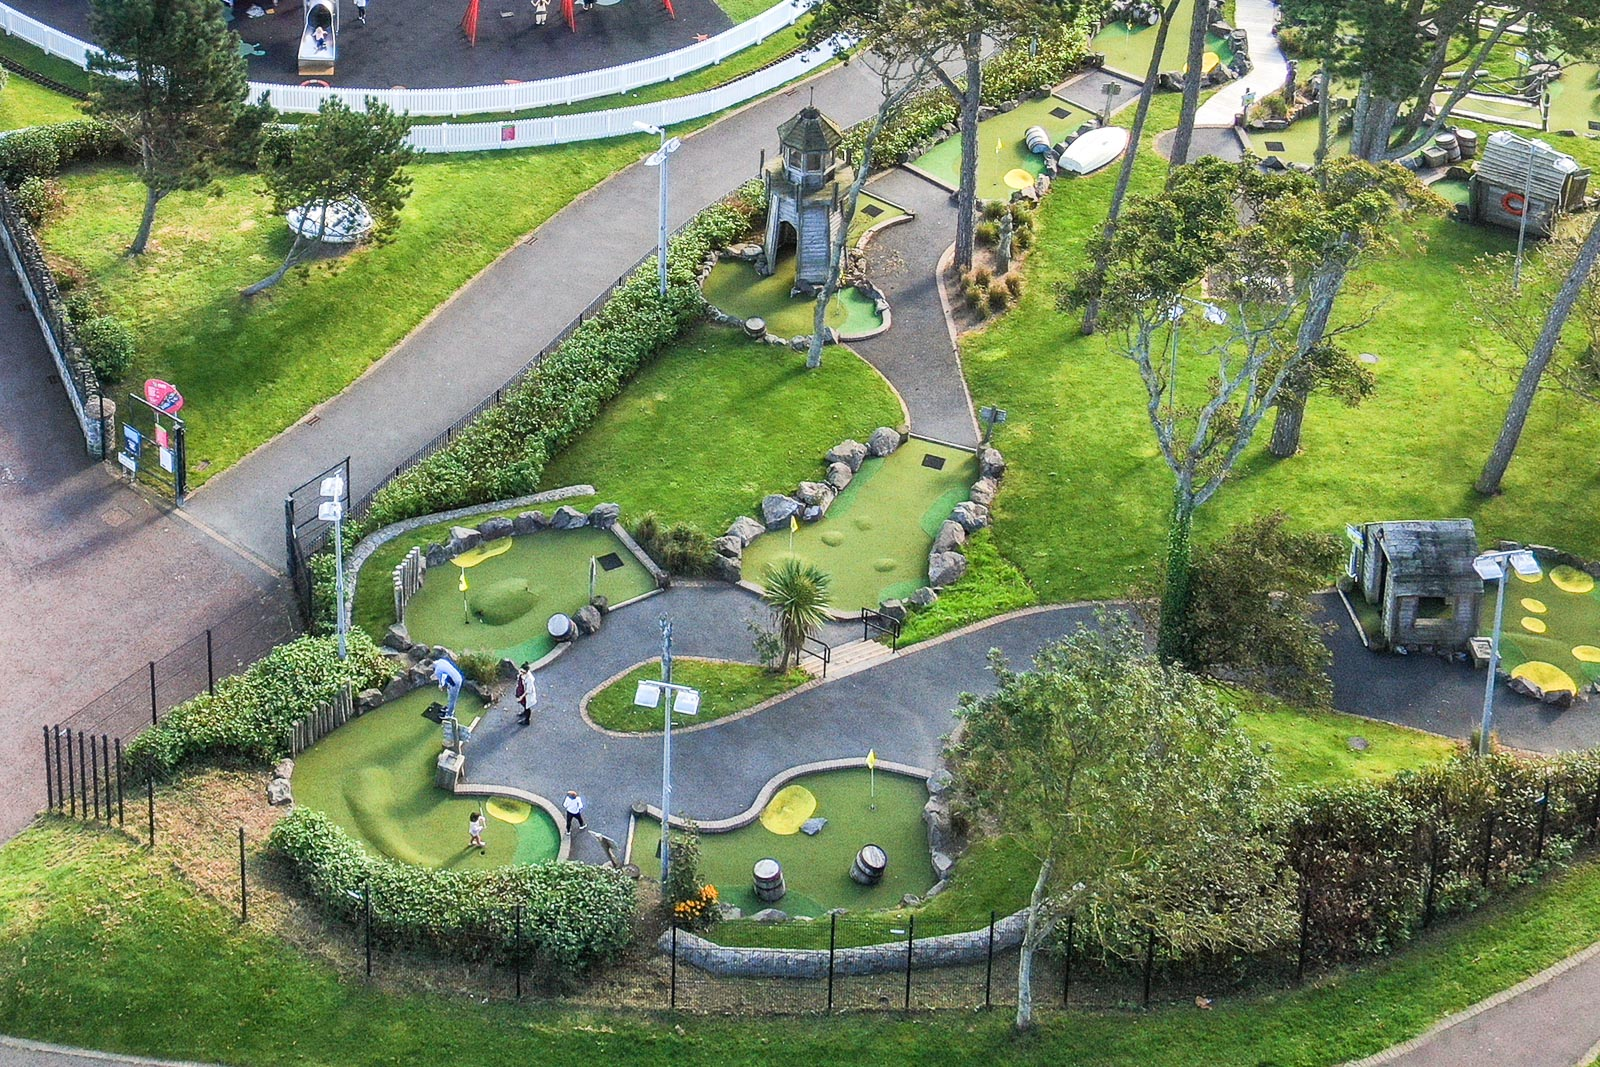 Aerial drone photography and video production services Dublin and Ireland portfolio - Pickie Fun Park, Bangor, aerial photo 0149-4